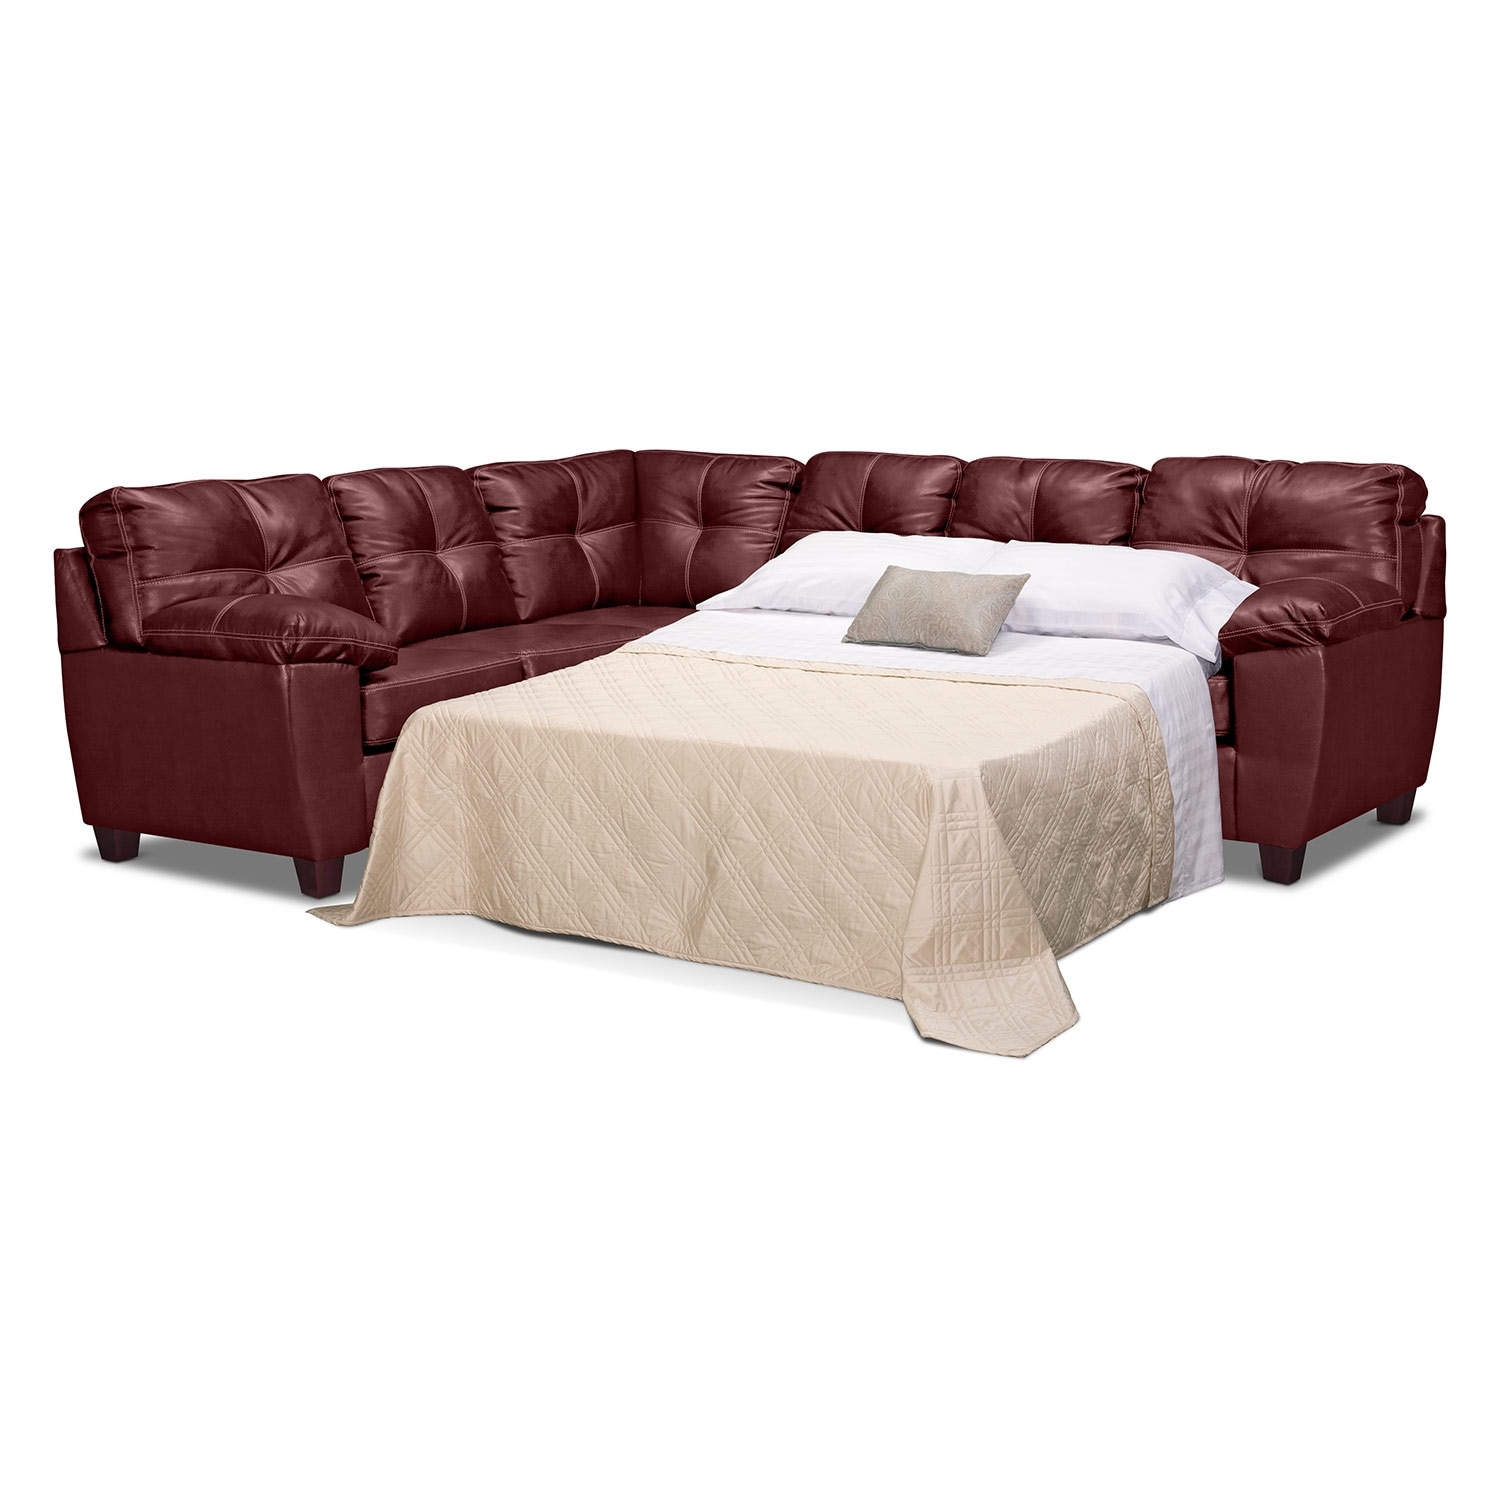 rialto sofa bed down filled ii leather 2 pc sleeper sectional value city